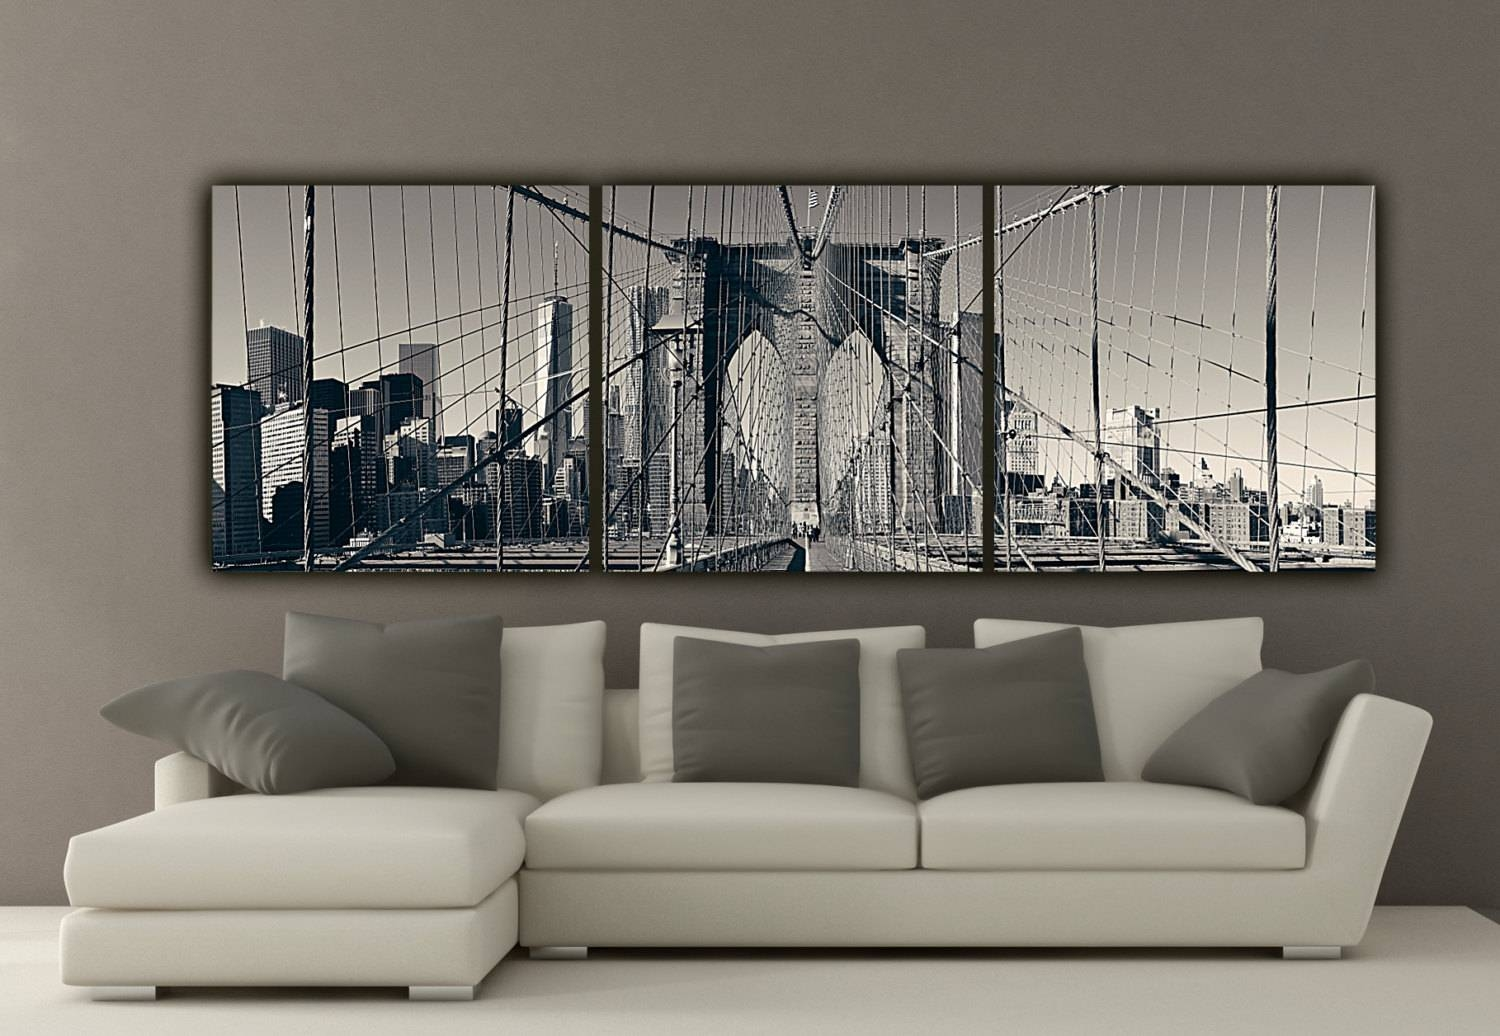 New York Brooklyn Bridge Canvas Wall Art Black And White New With Regard To Most Current Black And White Wall Art (View 6 of 16)